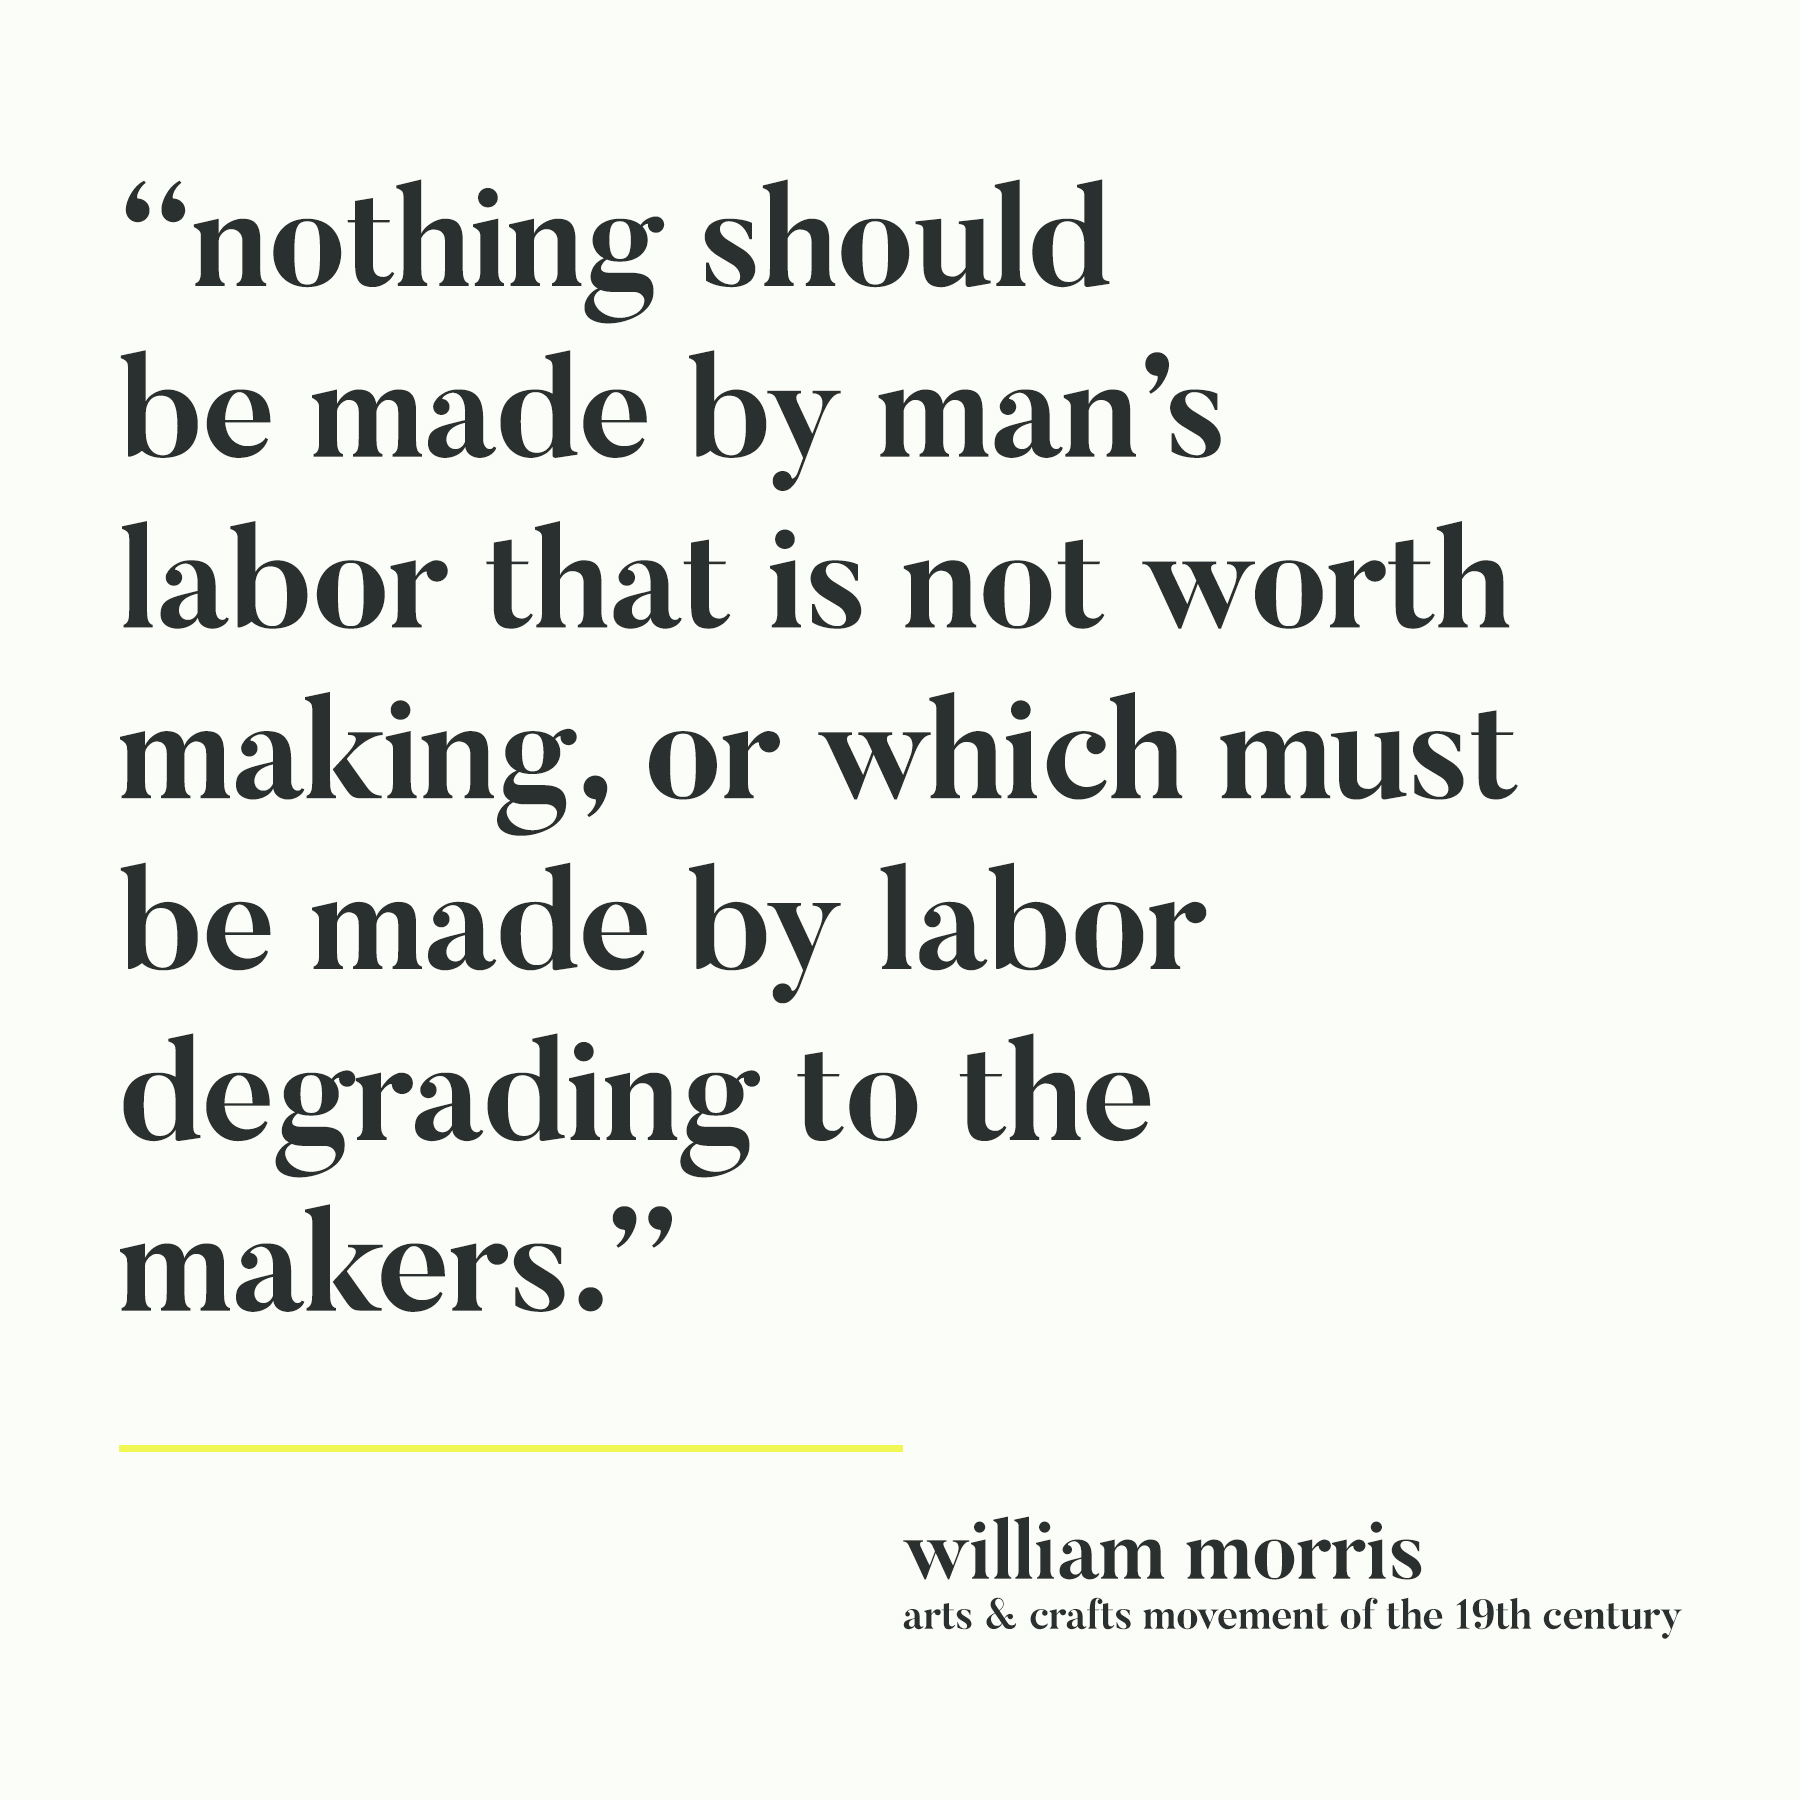 william morris quote.jpg